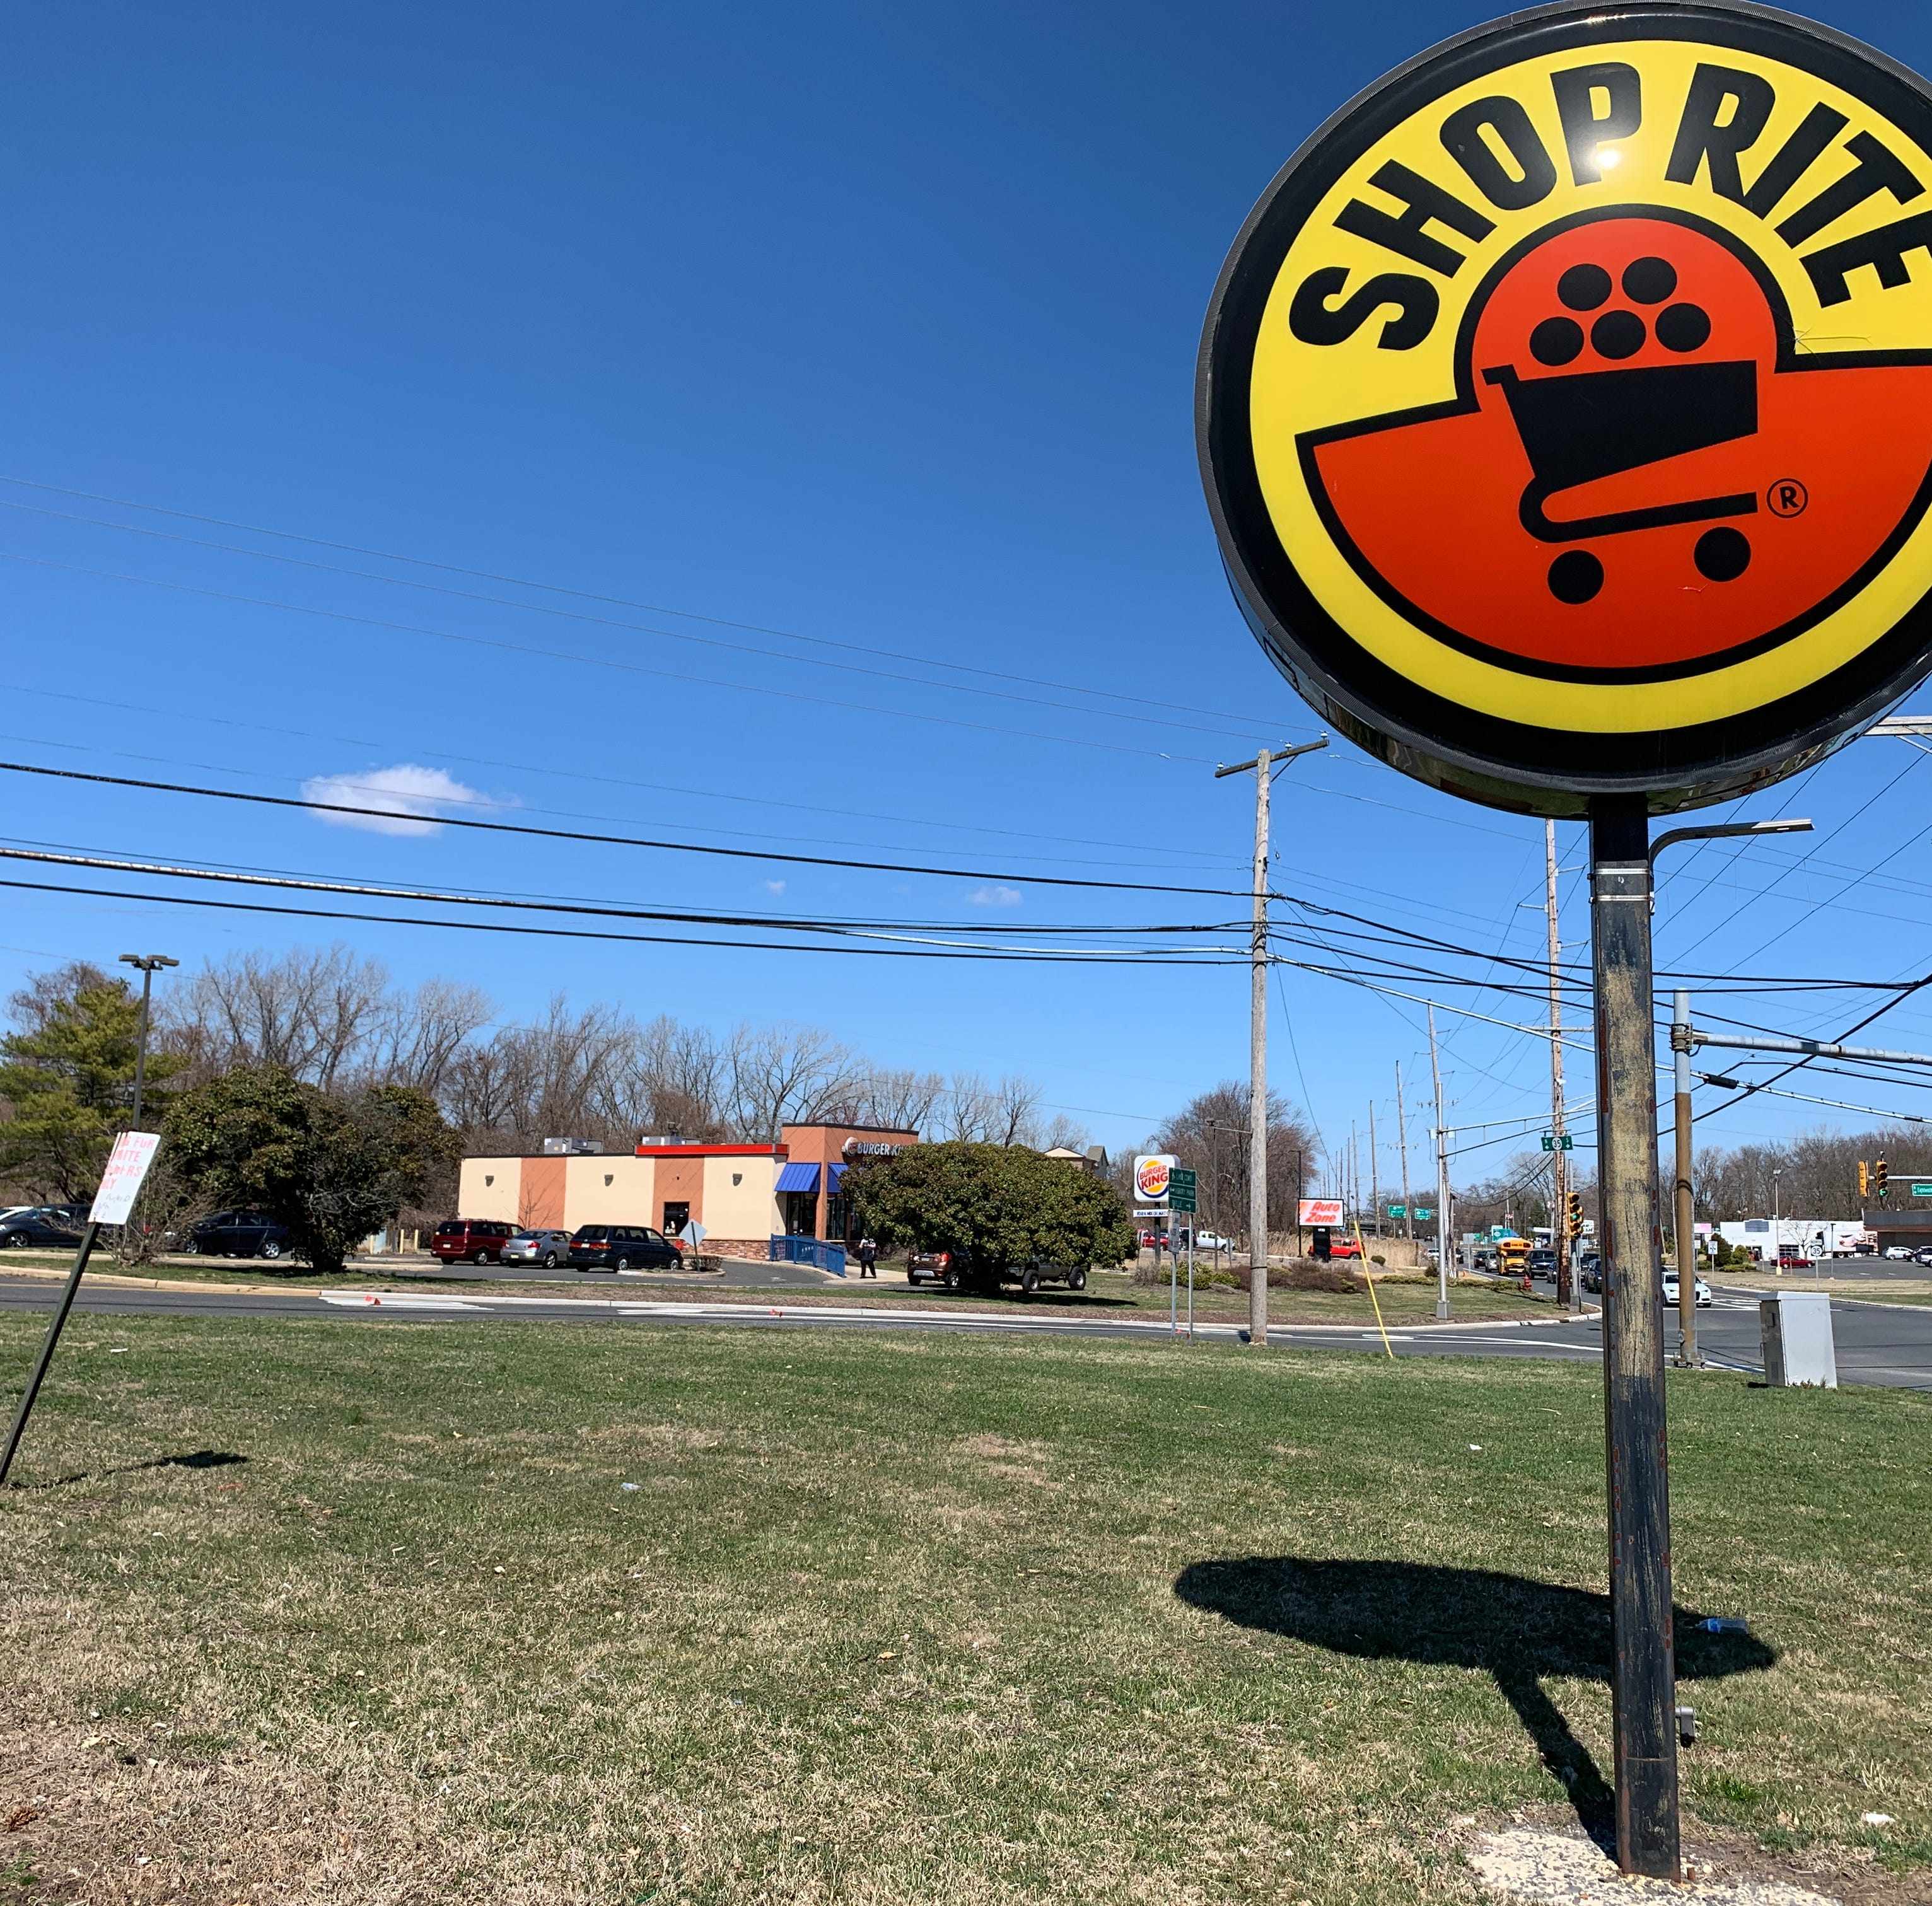 New ShopRite proposed for former Foodtown location in Wall